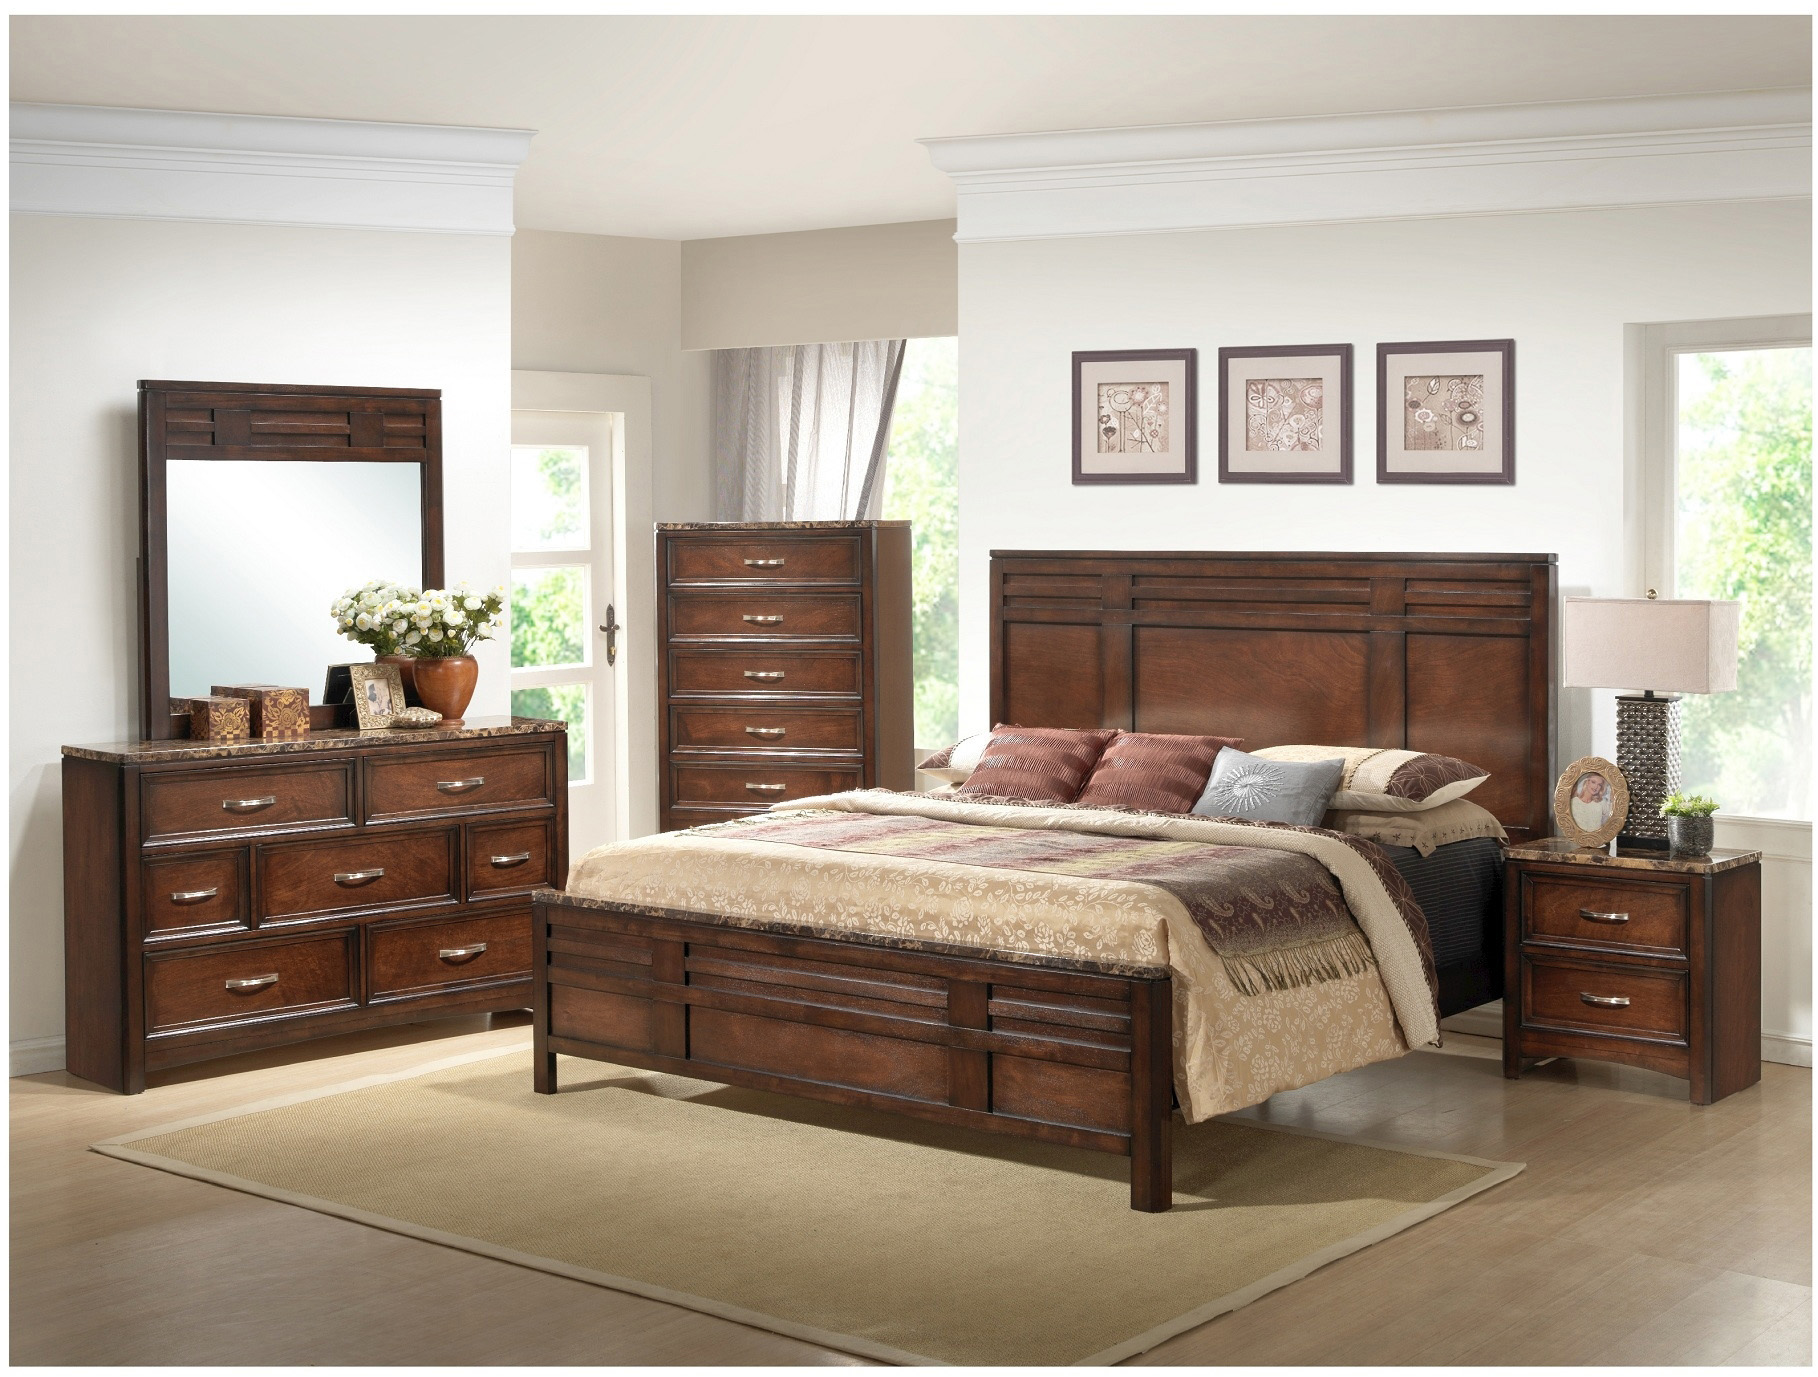 Collection of hundreds of Free Bedroom Furniture Designs from all over the world.